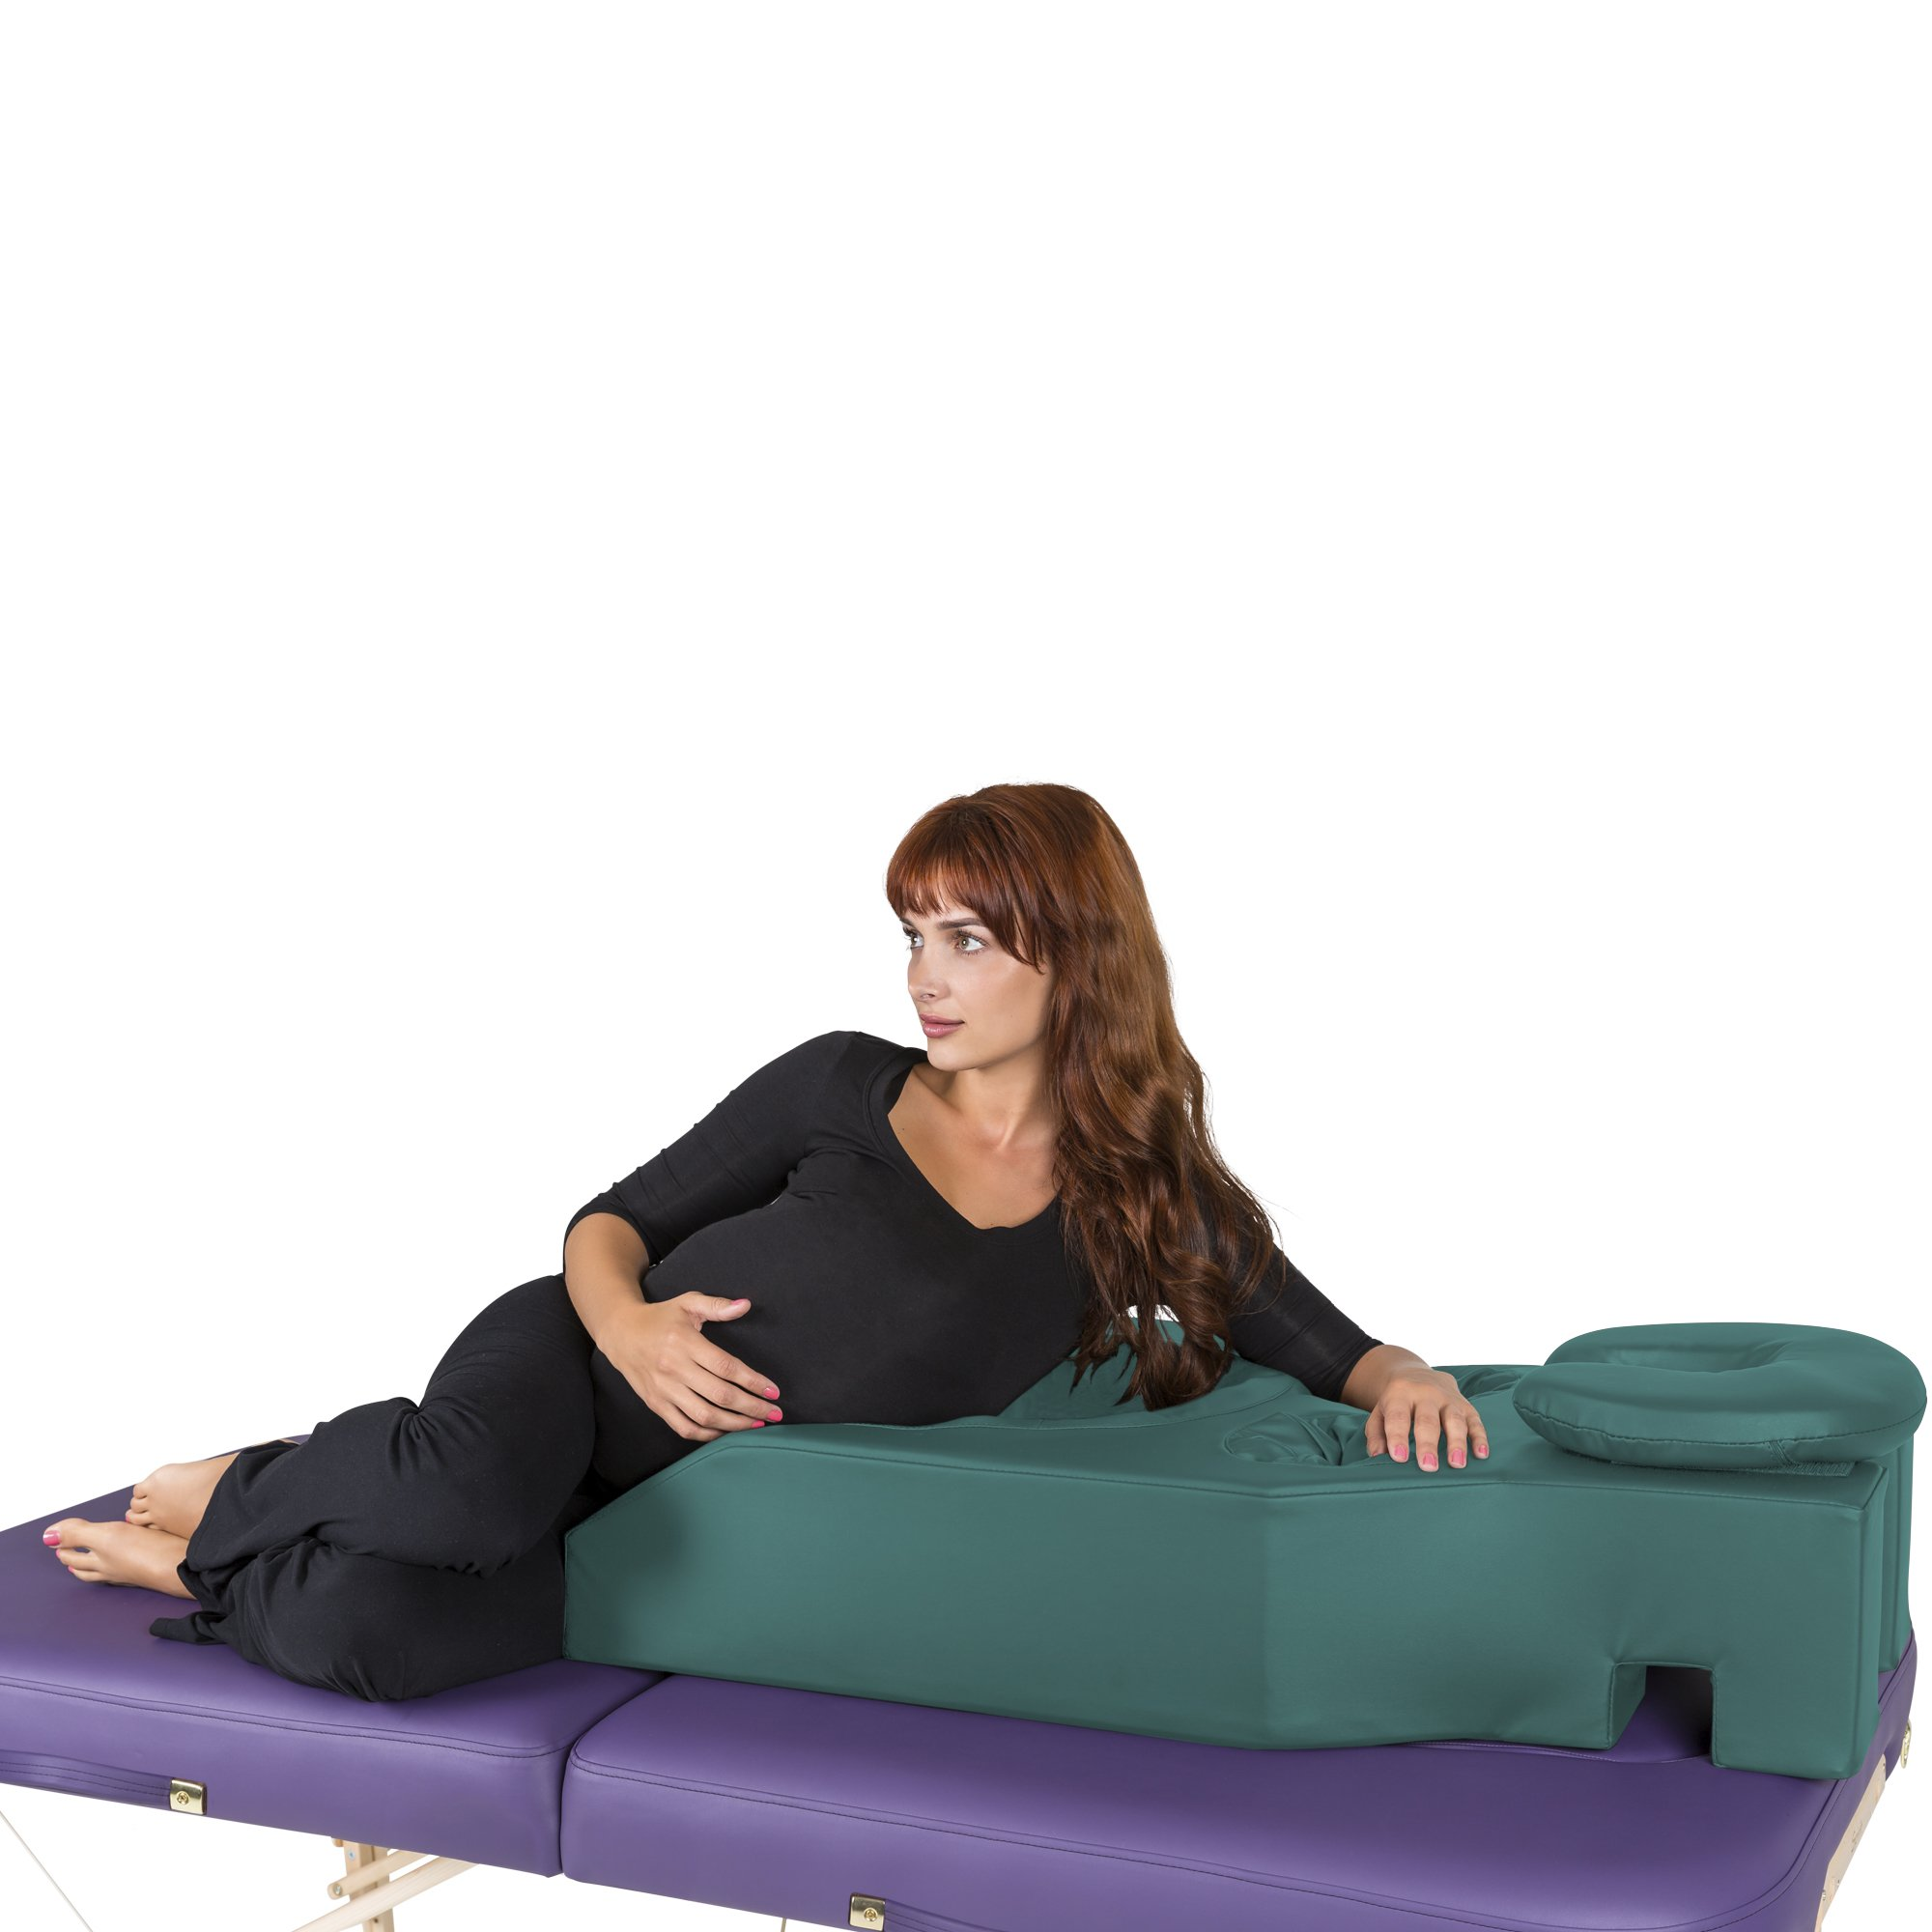 EARTHLITE Pregnancy Massage Cushion & Headrest - Full Body Pregnancy Bolster / Ideal After Breast Surgery & Lower Back Pain by Earthlite (Image #2)